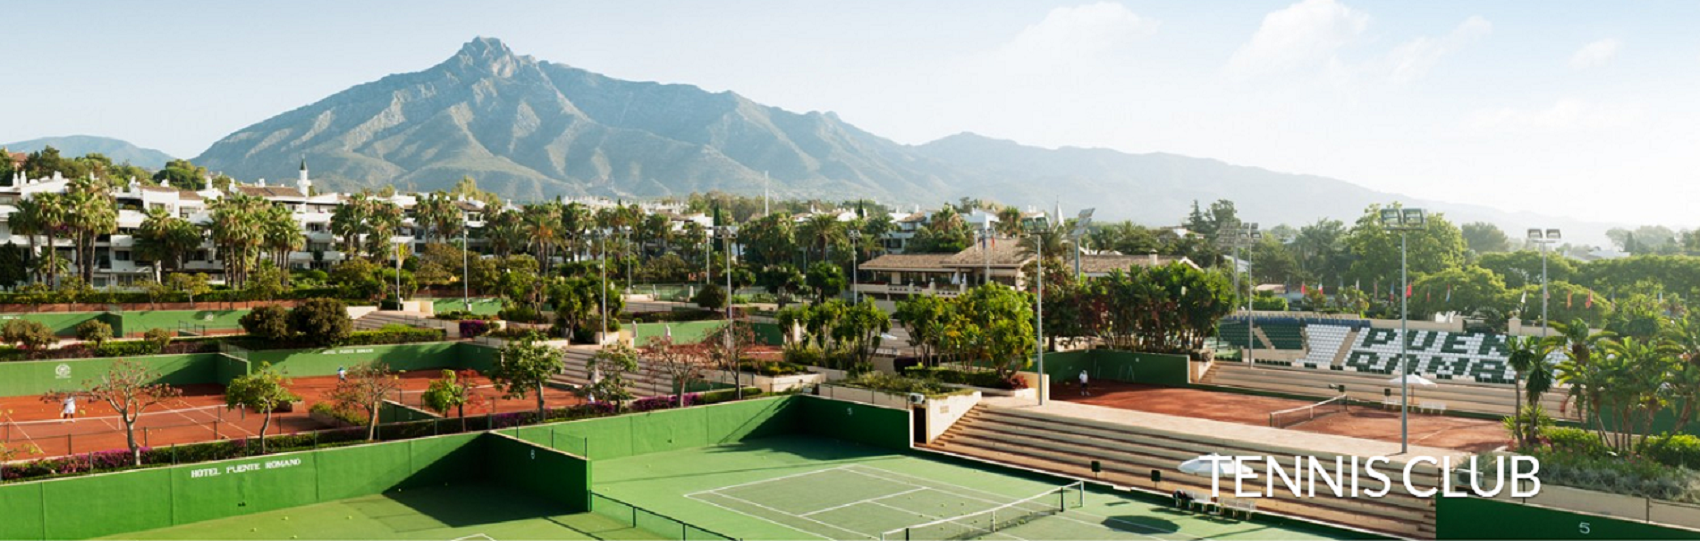 Senior masters cup returns to the Puente Romano